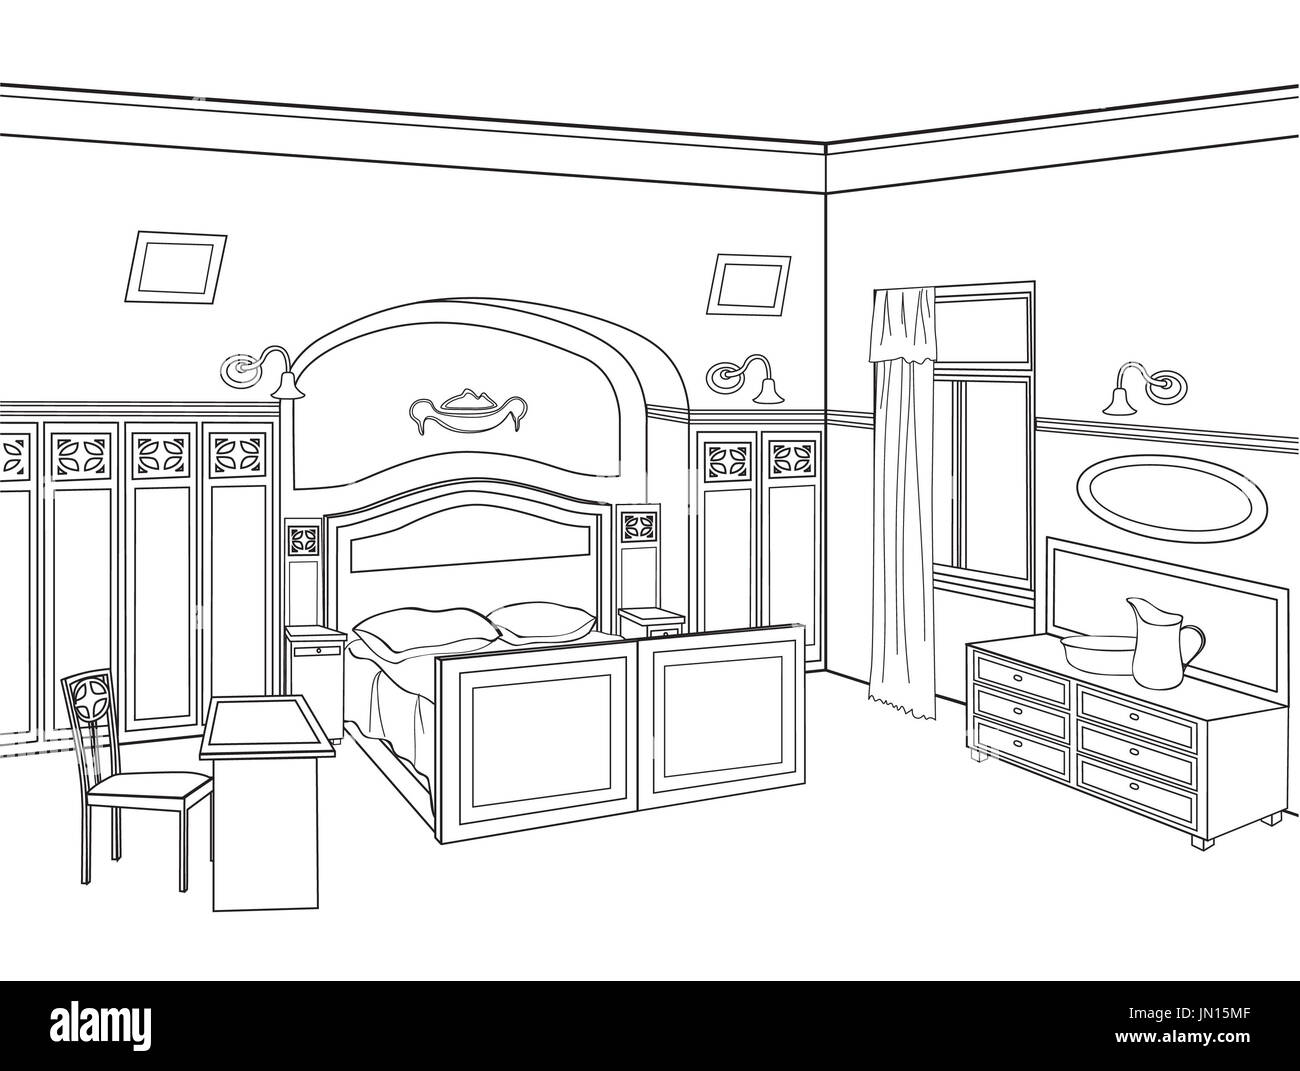 Architectural Hand Drawing Living Room Stockfotos Und